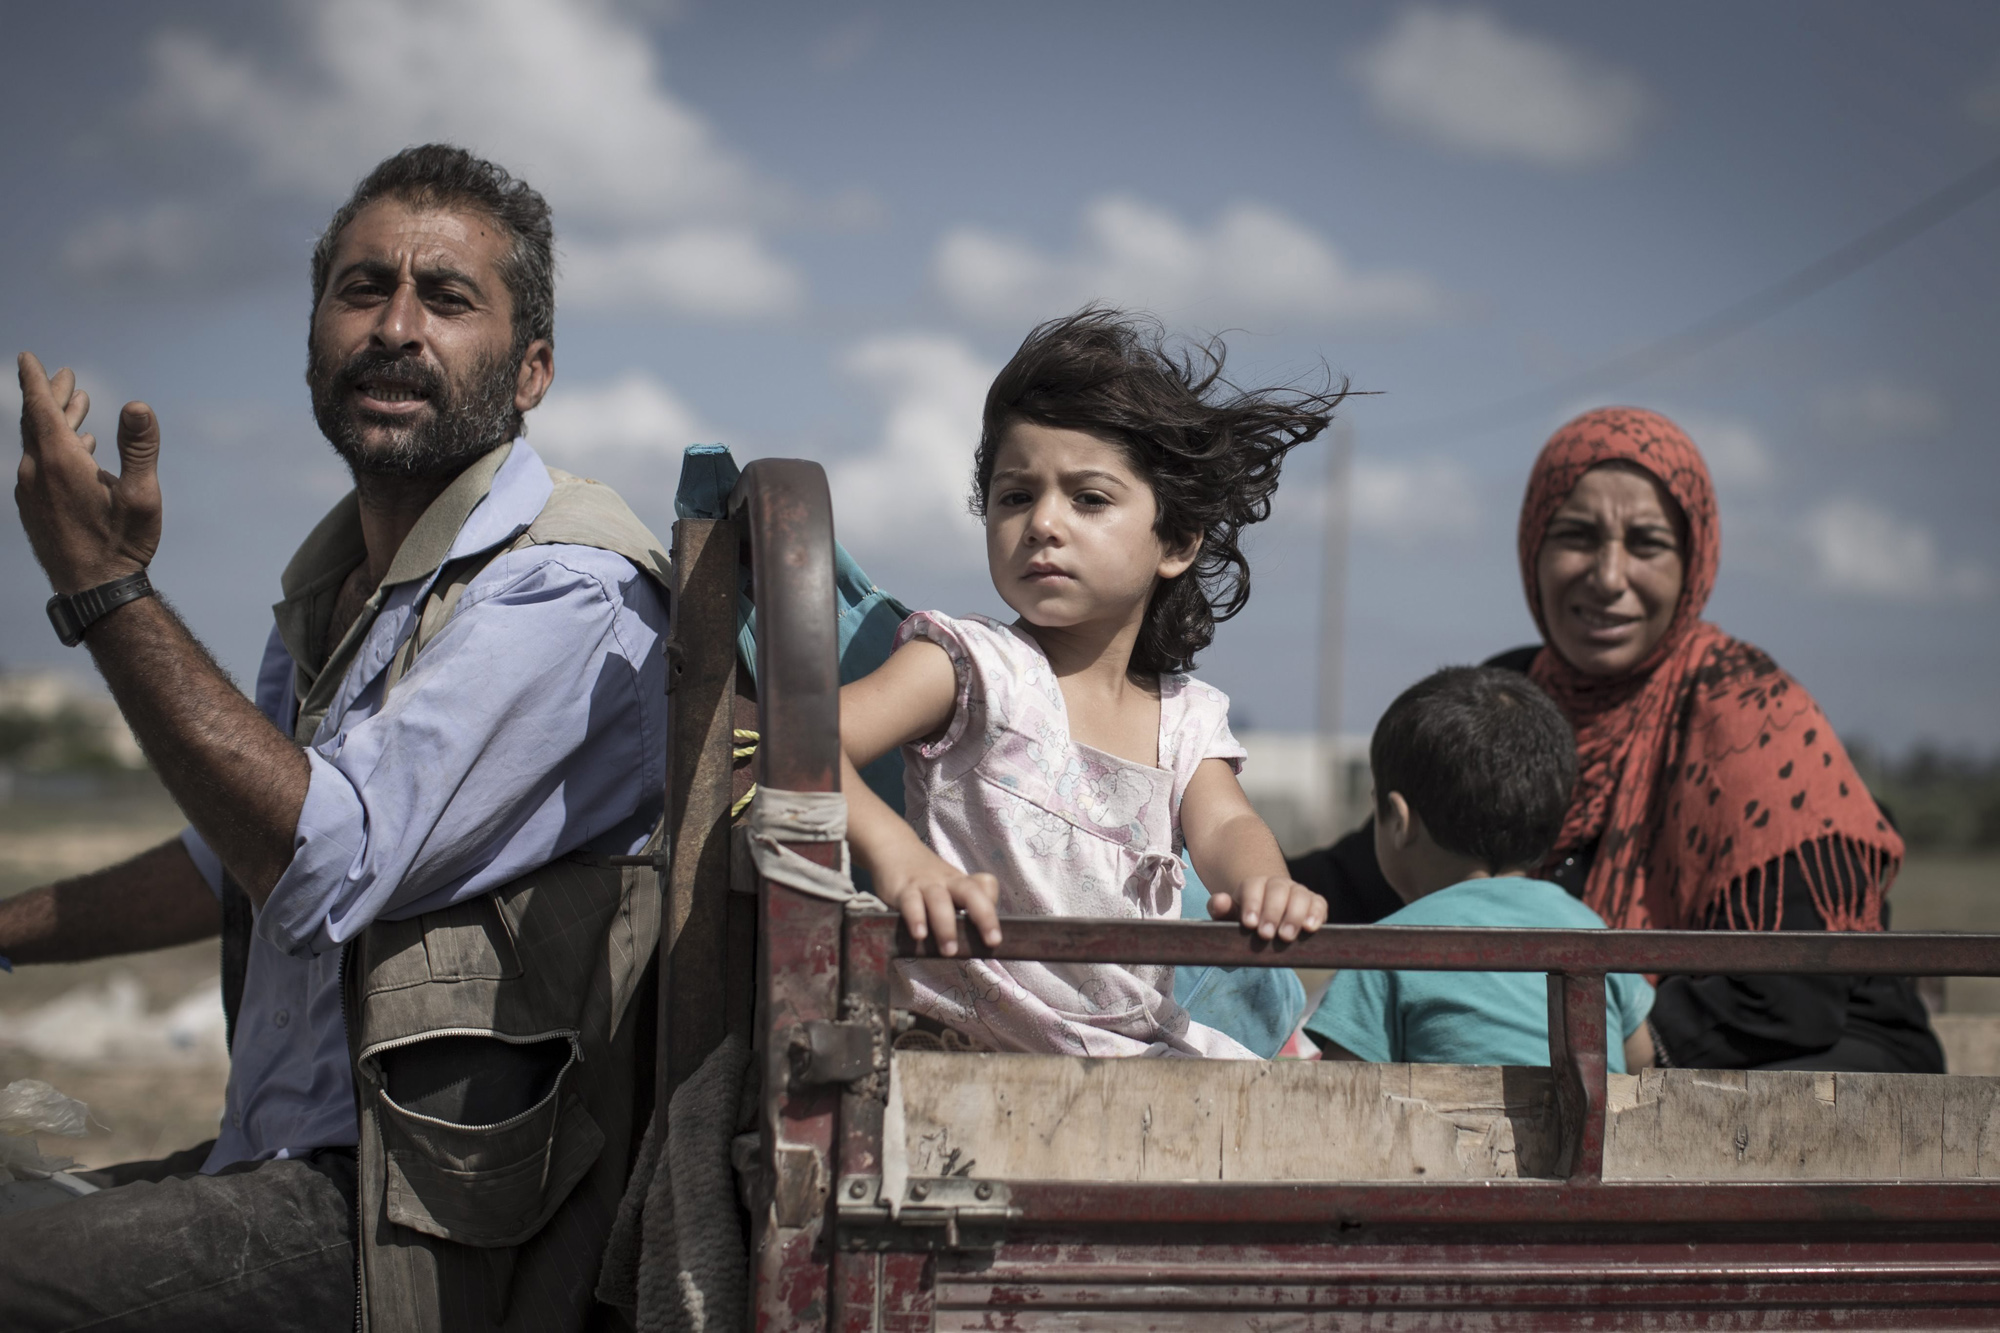 A Palestinian family who fled their homes is en route to seek shelter in a UN school in Khan Younis, central Gaza Strip, 18 July 18, 2014.